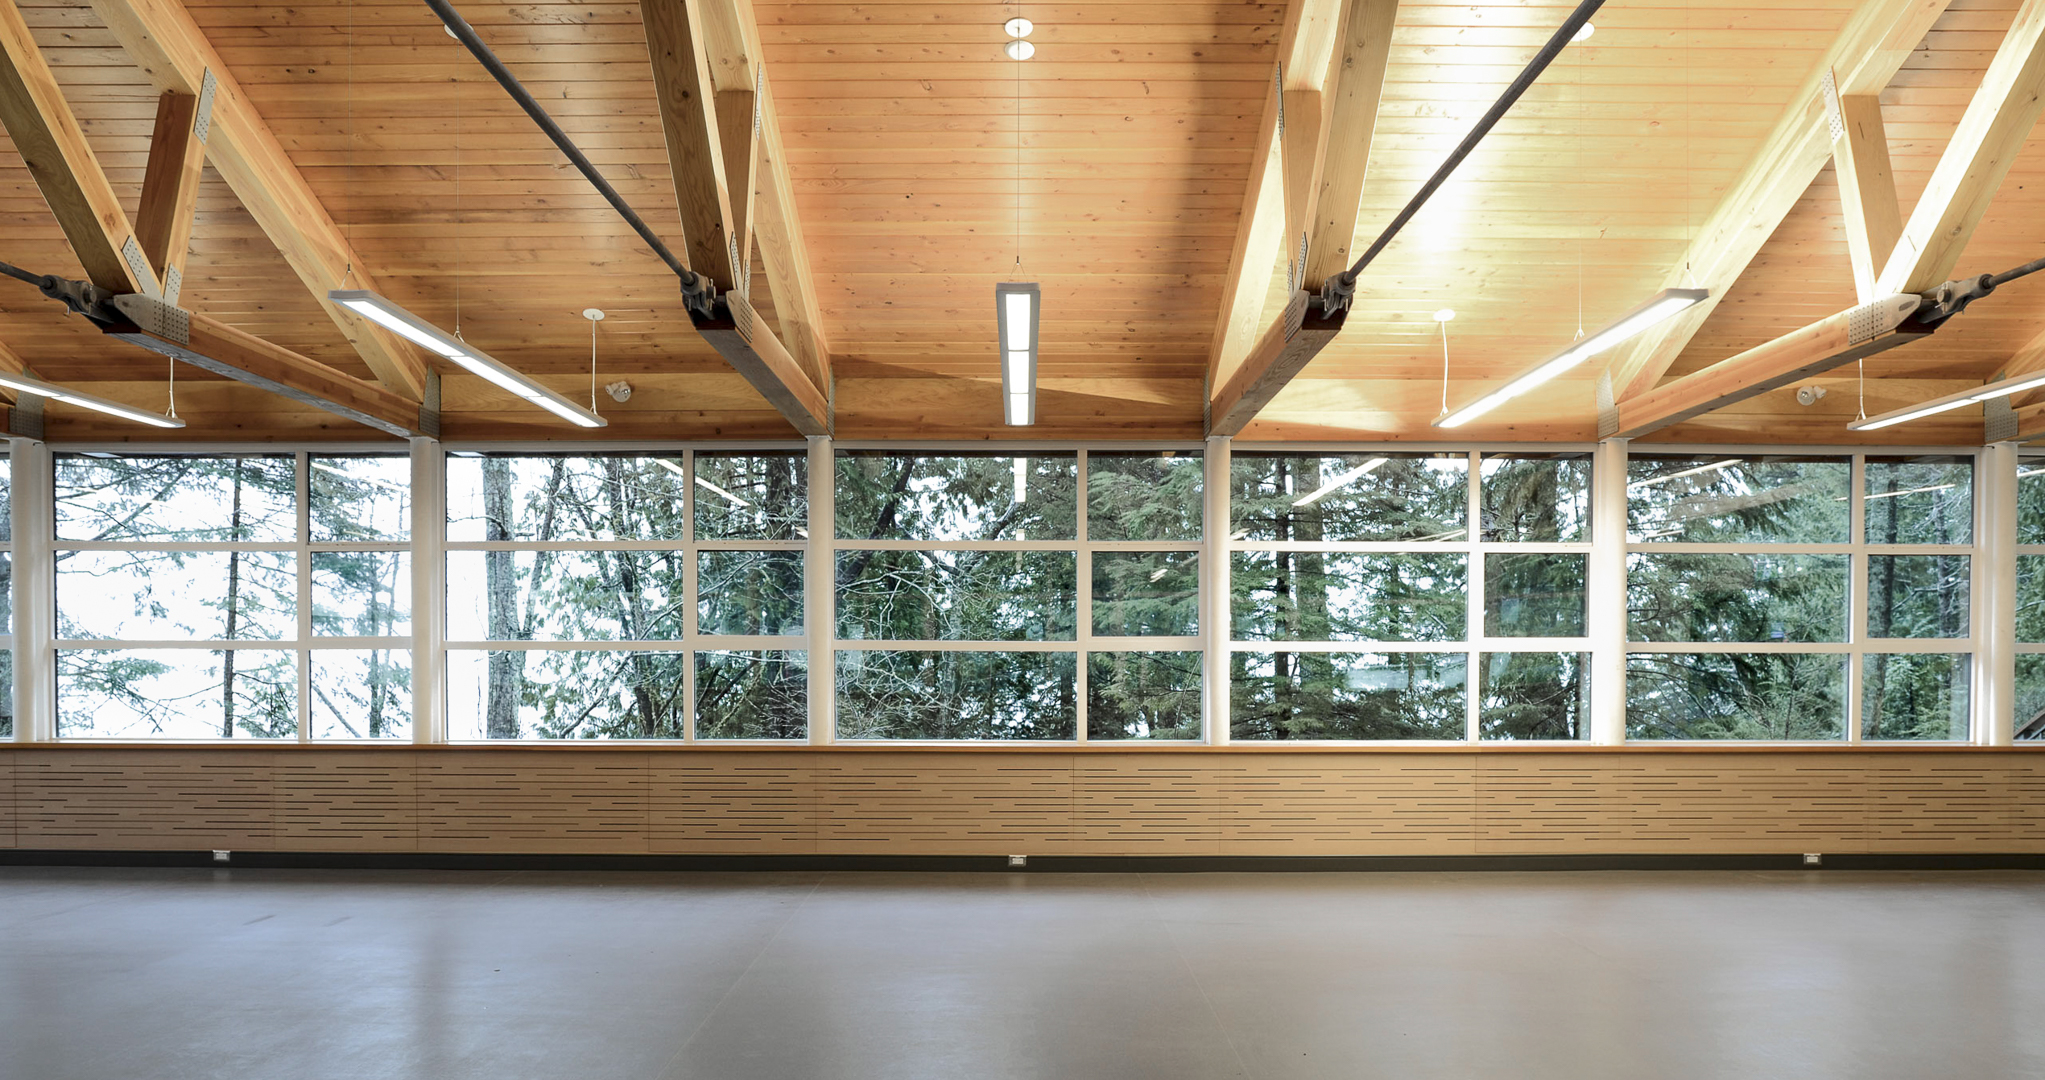 Fircom_Dining_Hall_Completed_Project_Web-5.jpg